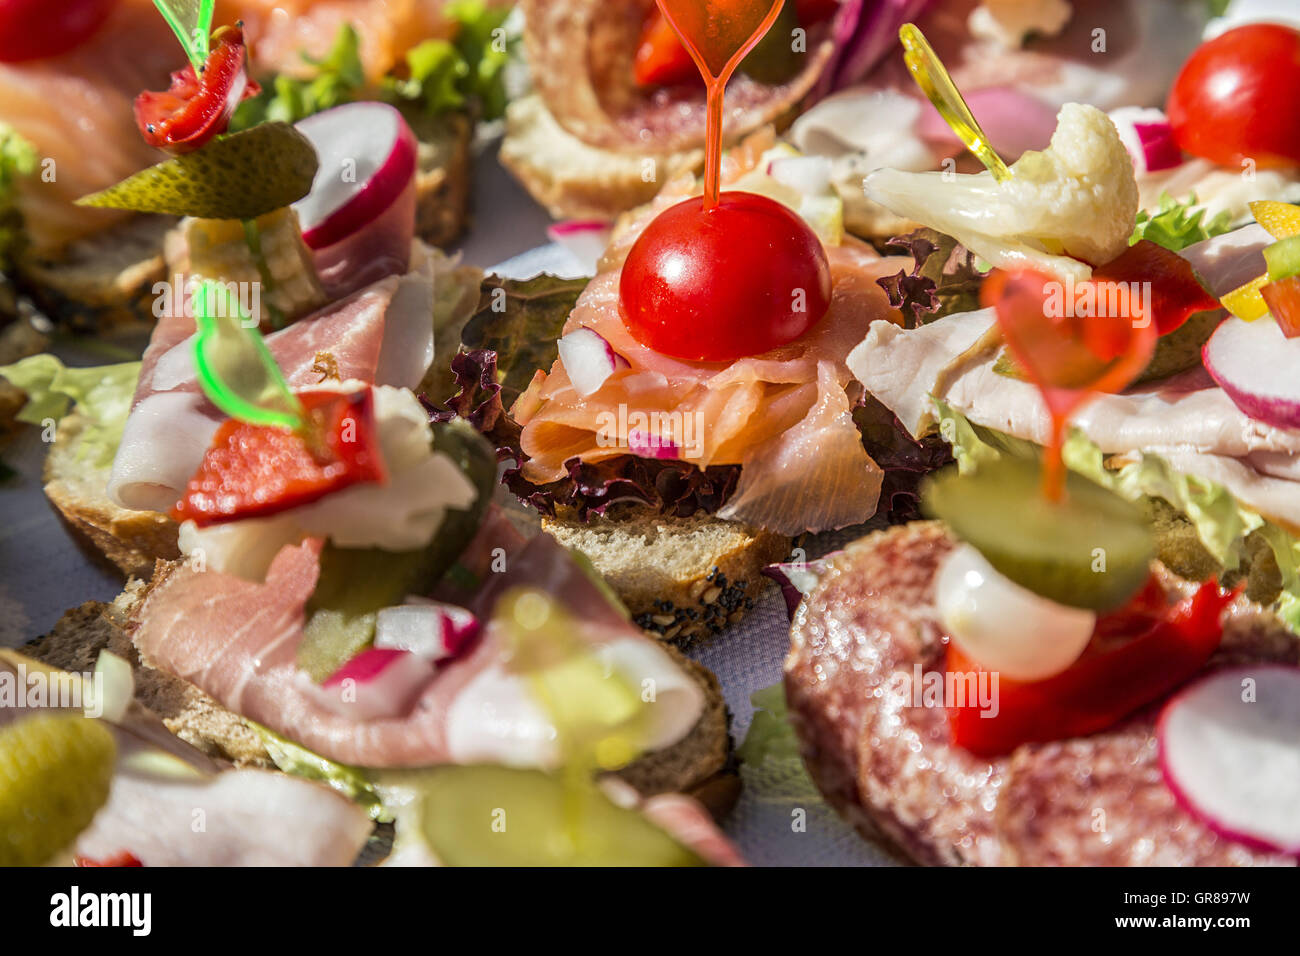 Platters With Sandwiches Decorate The Festive Buffet - Stock Image